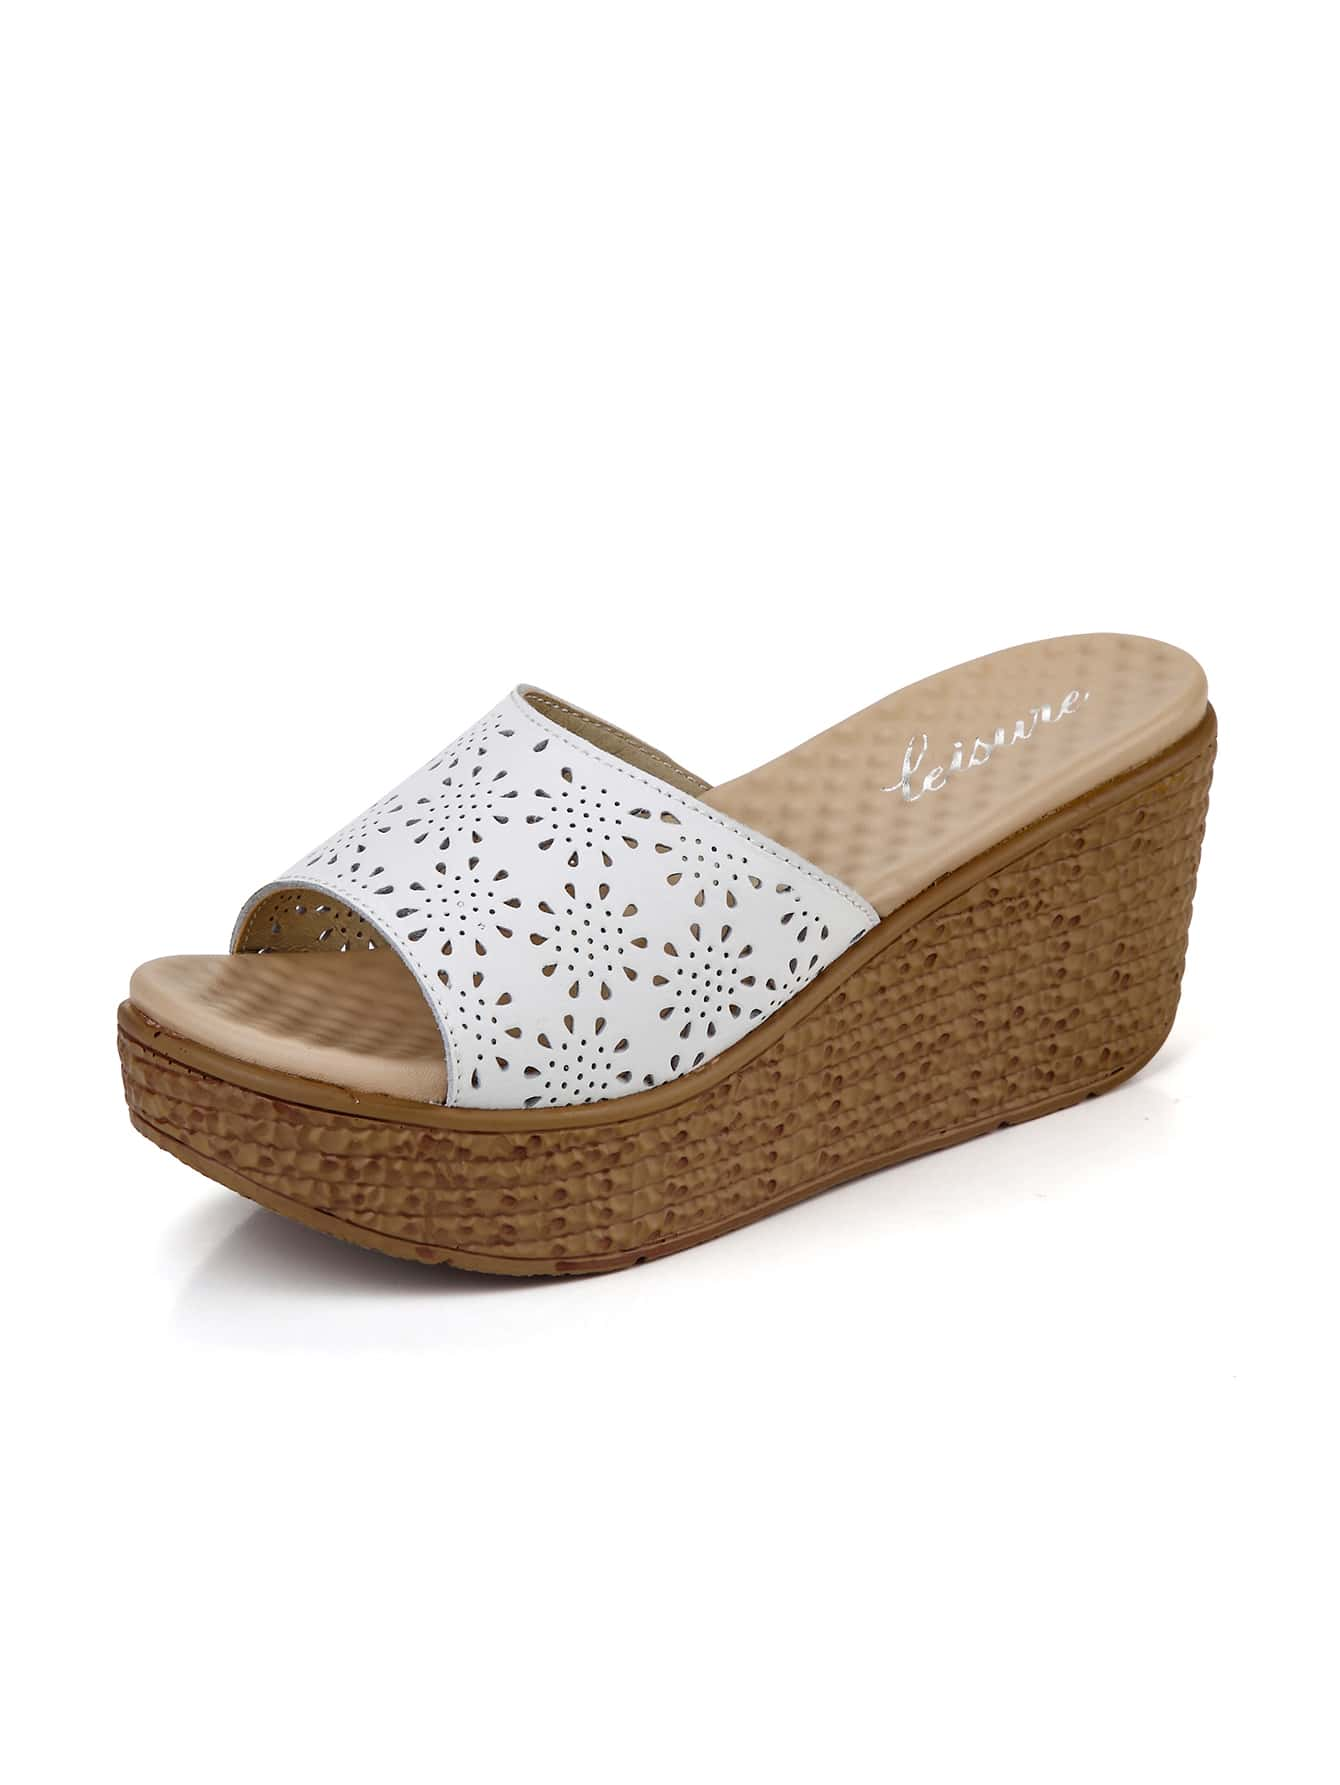 Hollow Out Wedge Wedge Sandals